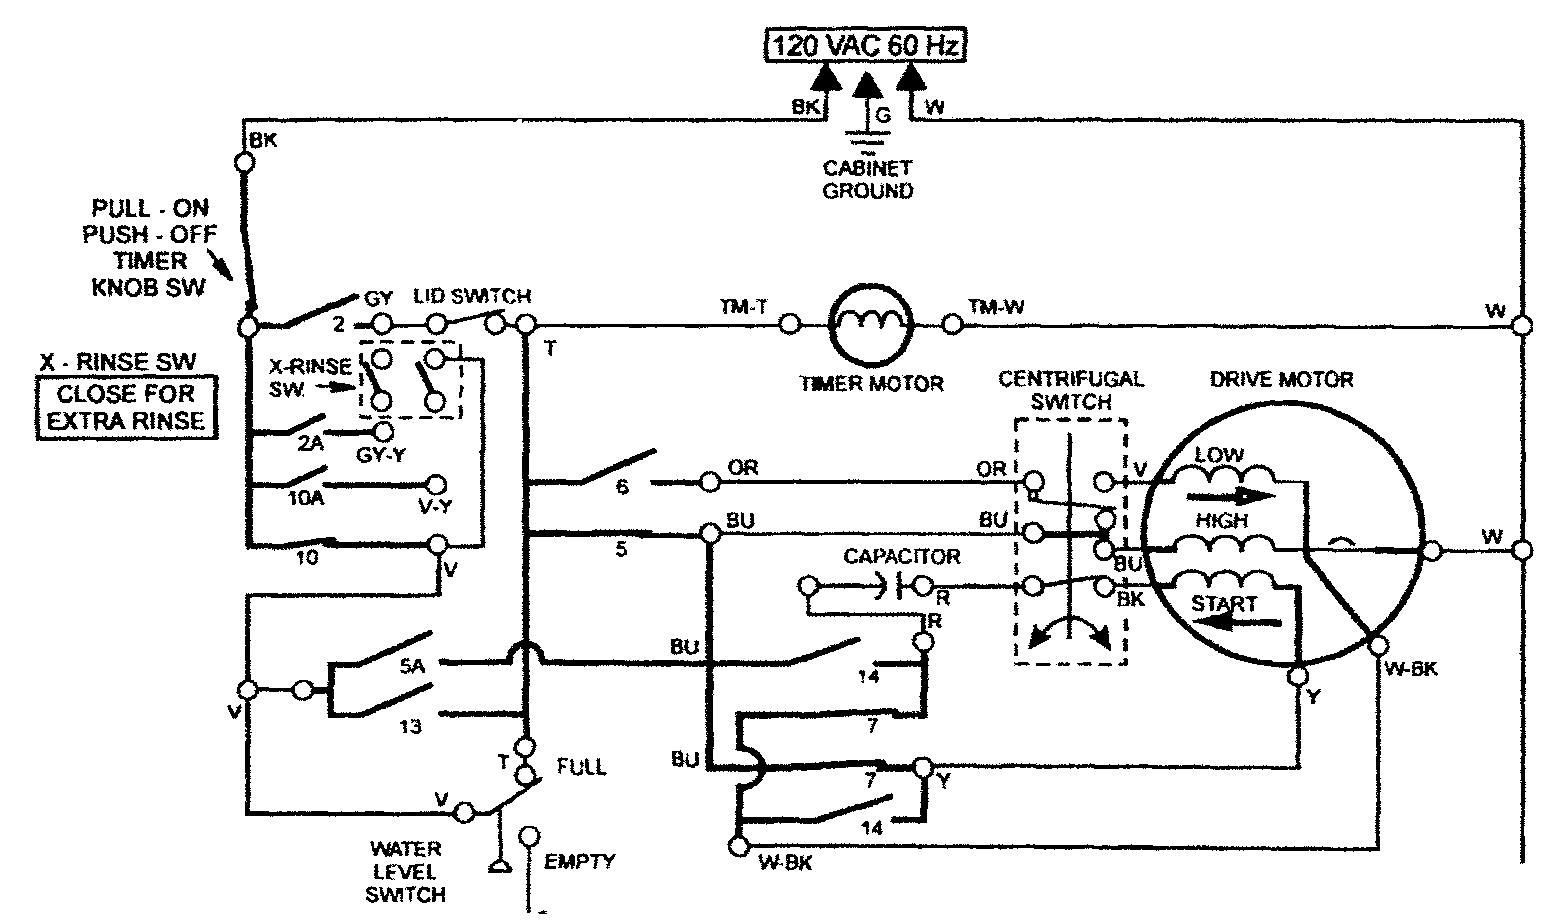 Vaporizing Pot Type Oil Burners as well 2004 Yukon Parts Diagram besides Mat Course Module Five S le Page in addition Beckett Burner Wiring Diagram For Adc further Wiring Diagram Coil Ignition. on beckett burner wiring